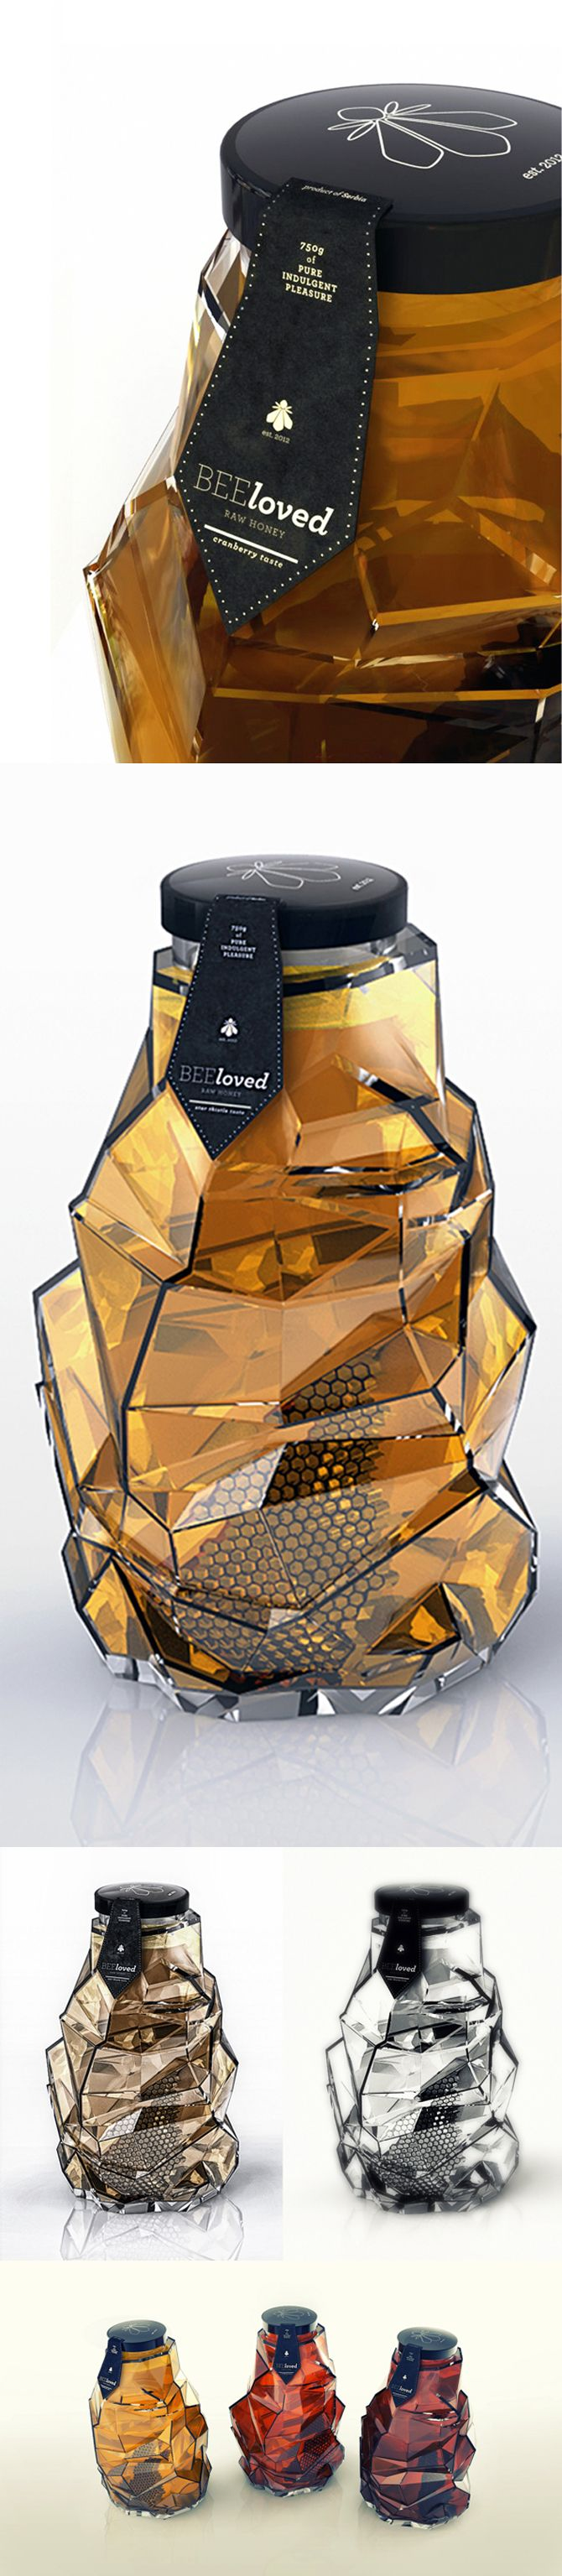 Honey packaging designed by Tamara Mihajlovic. Mr. Bear.. is that you?